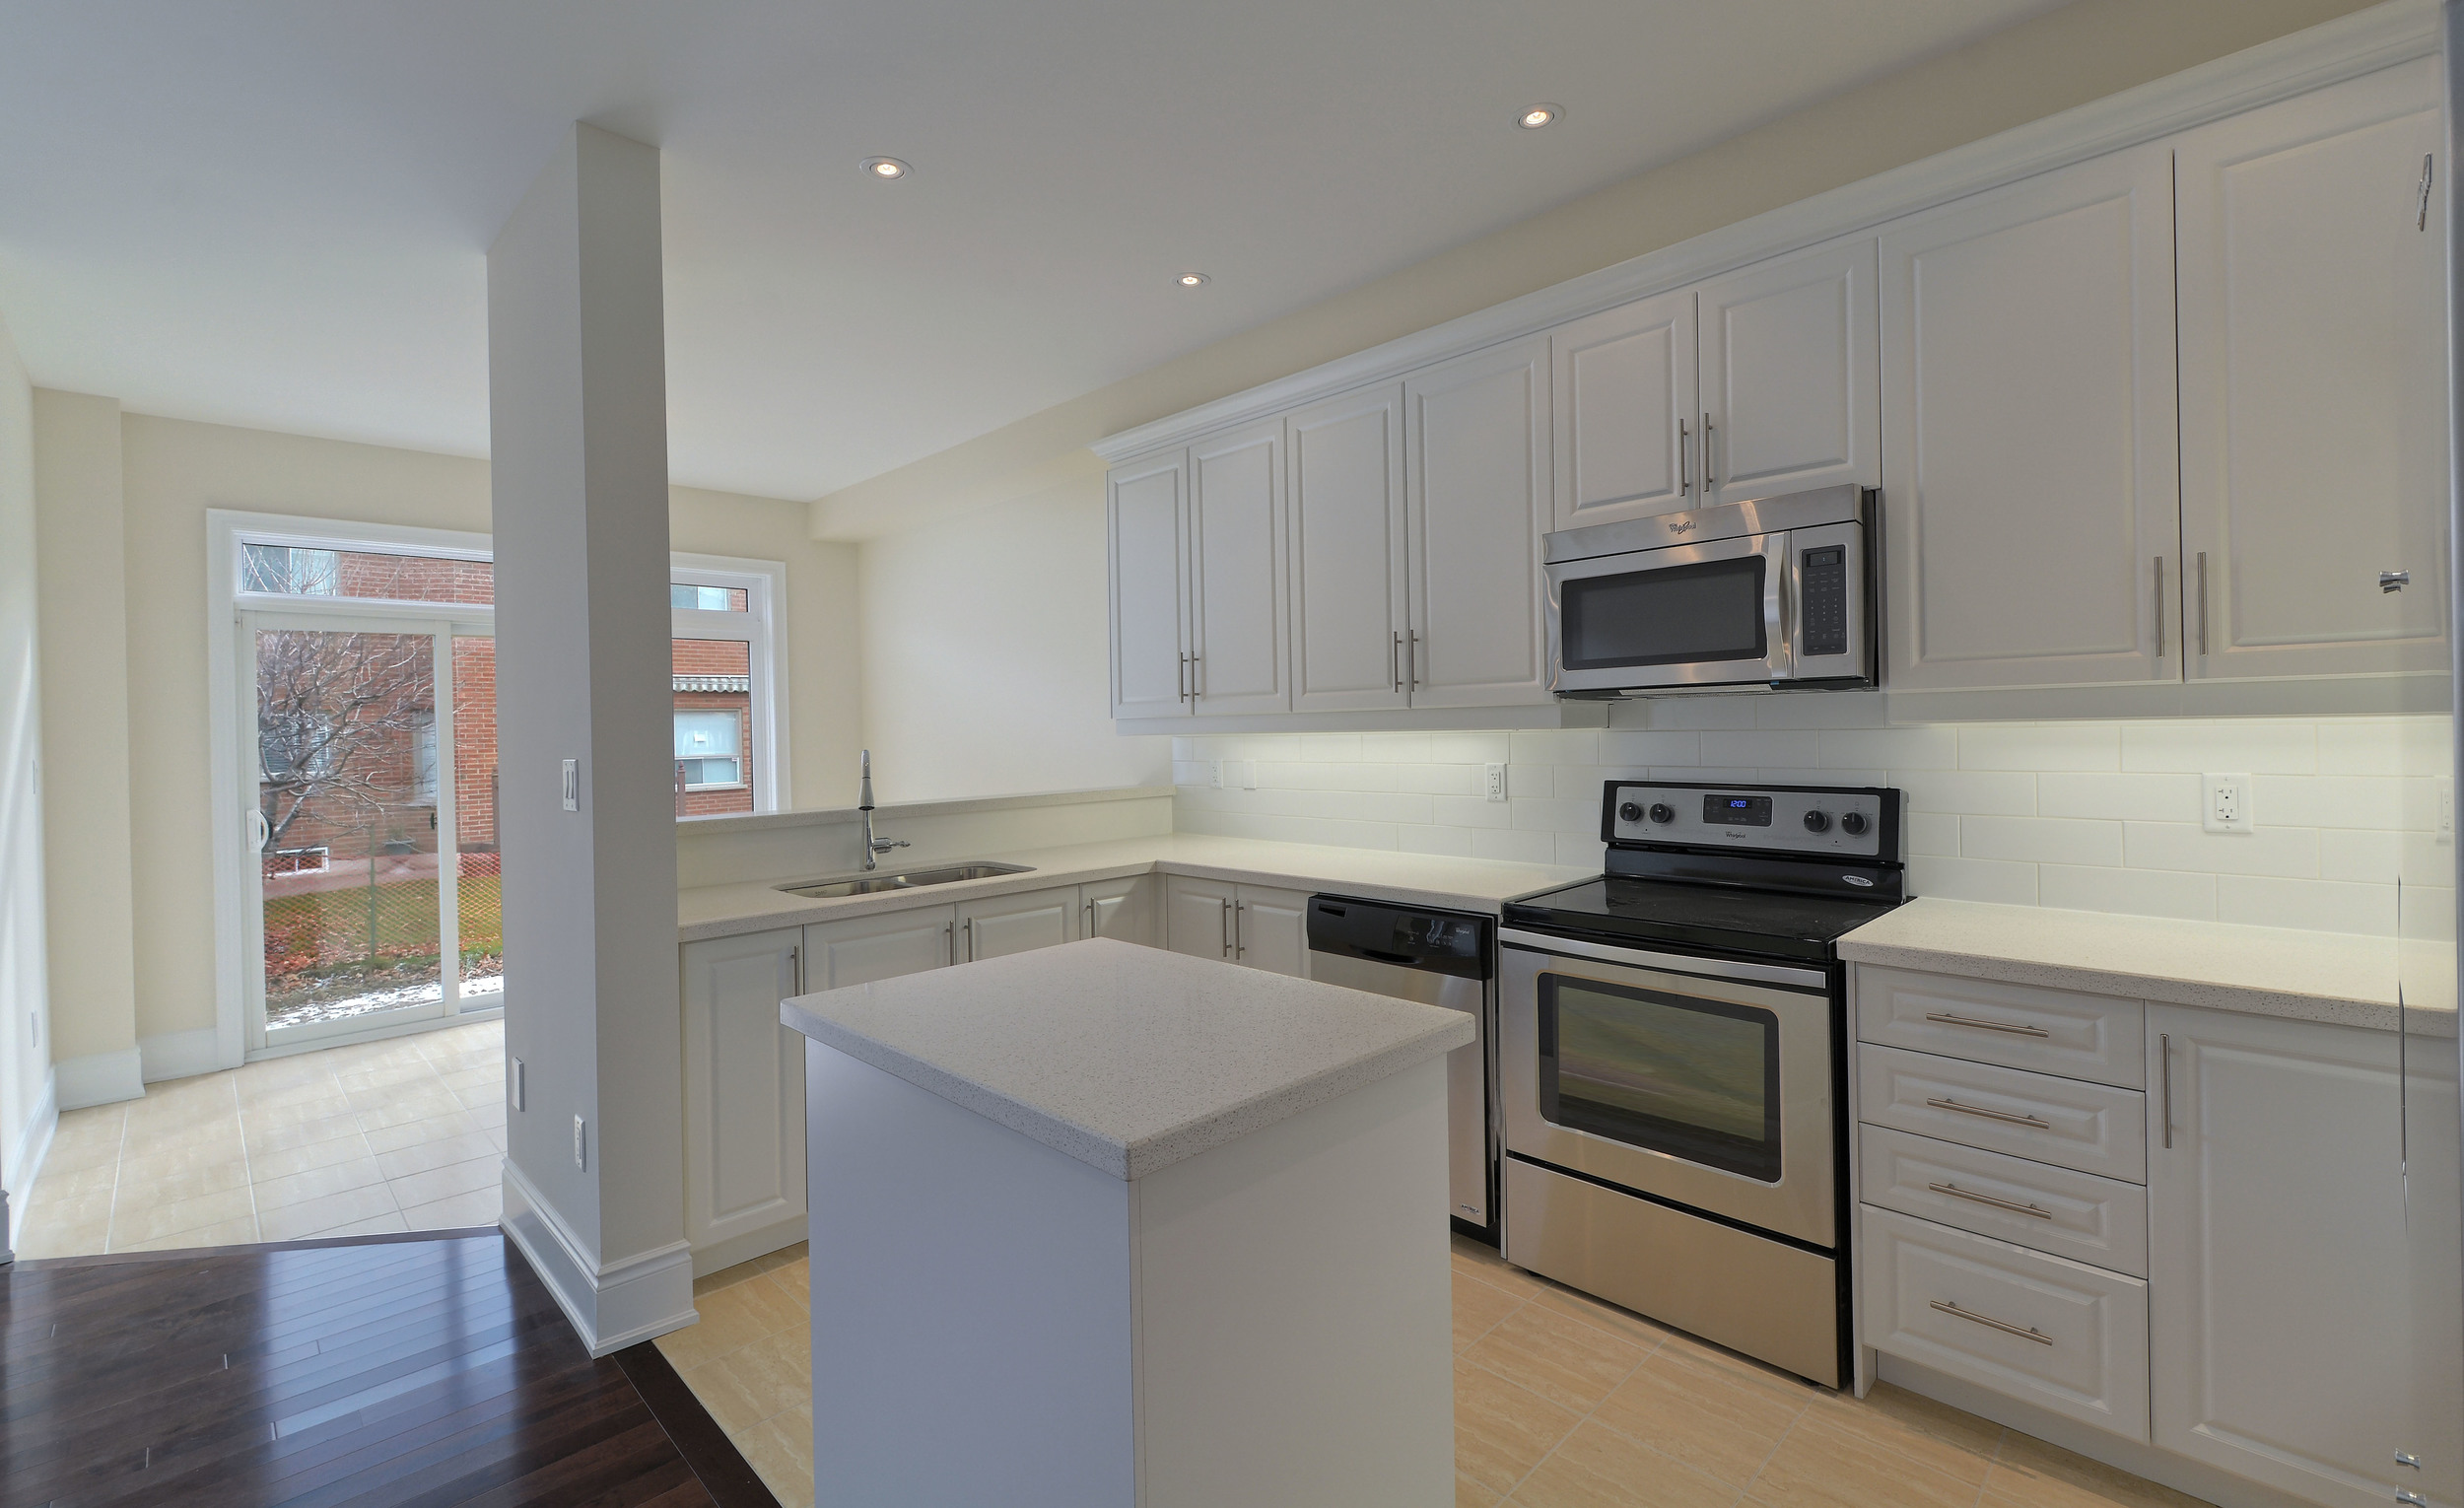 007-Kitchen and Walk-Out to the Yard.jpg